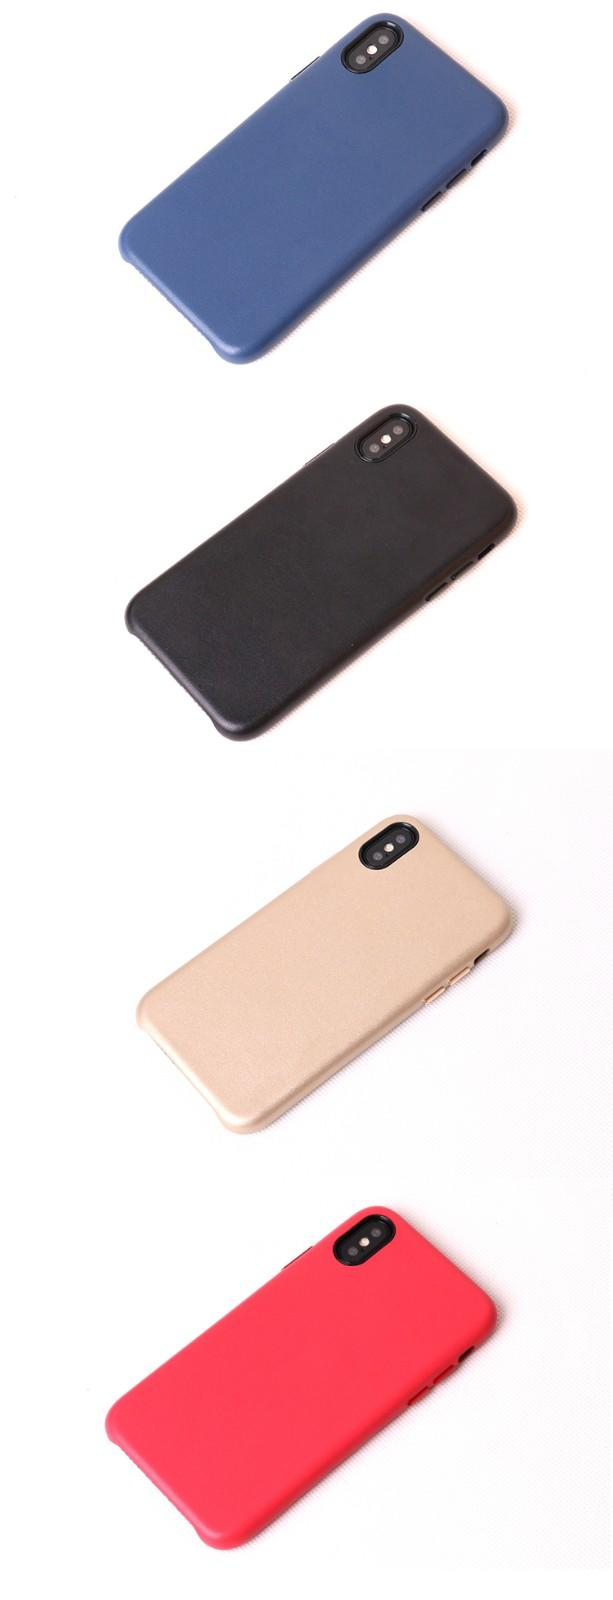 Vserstore glasstpu top iphone cases wholesale for iphone